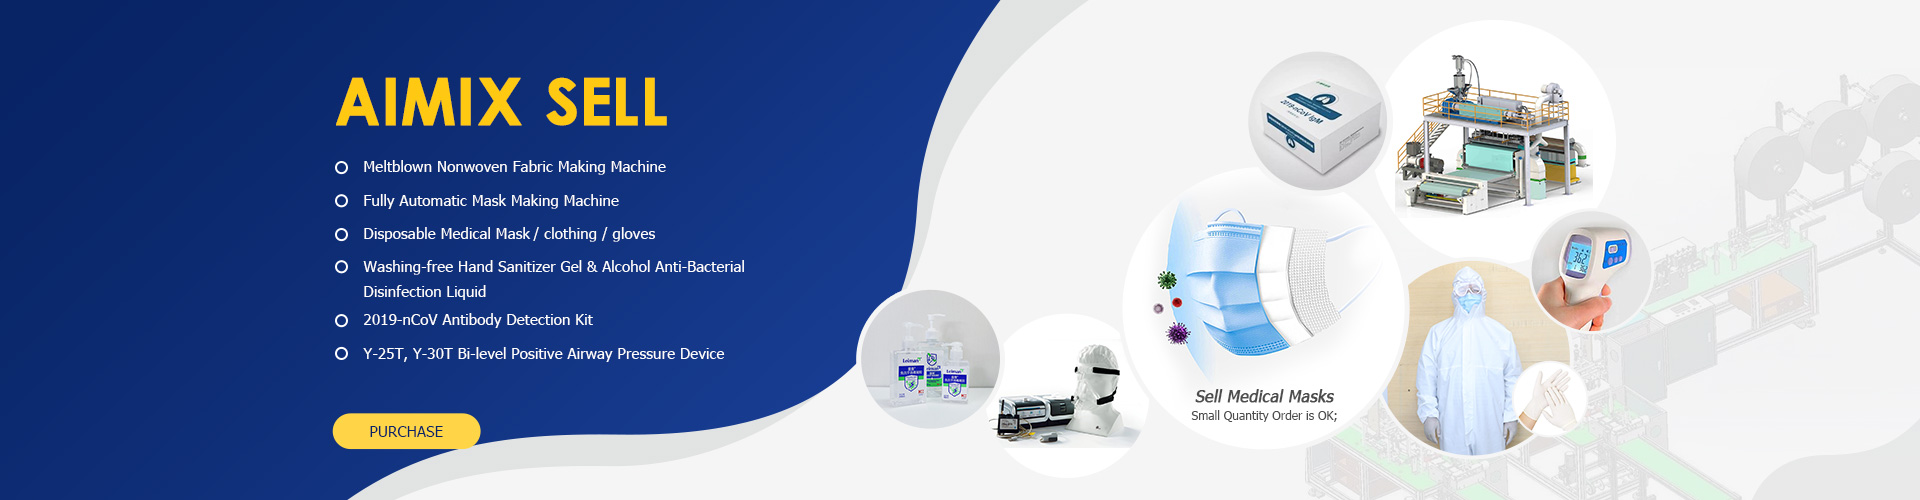 AIMIX GROUP BANNER 500